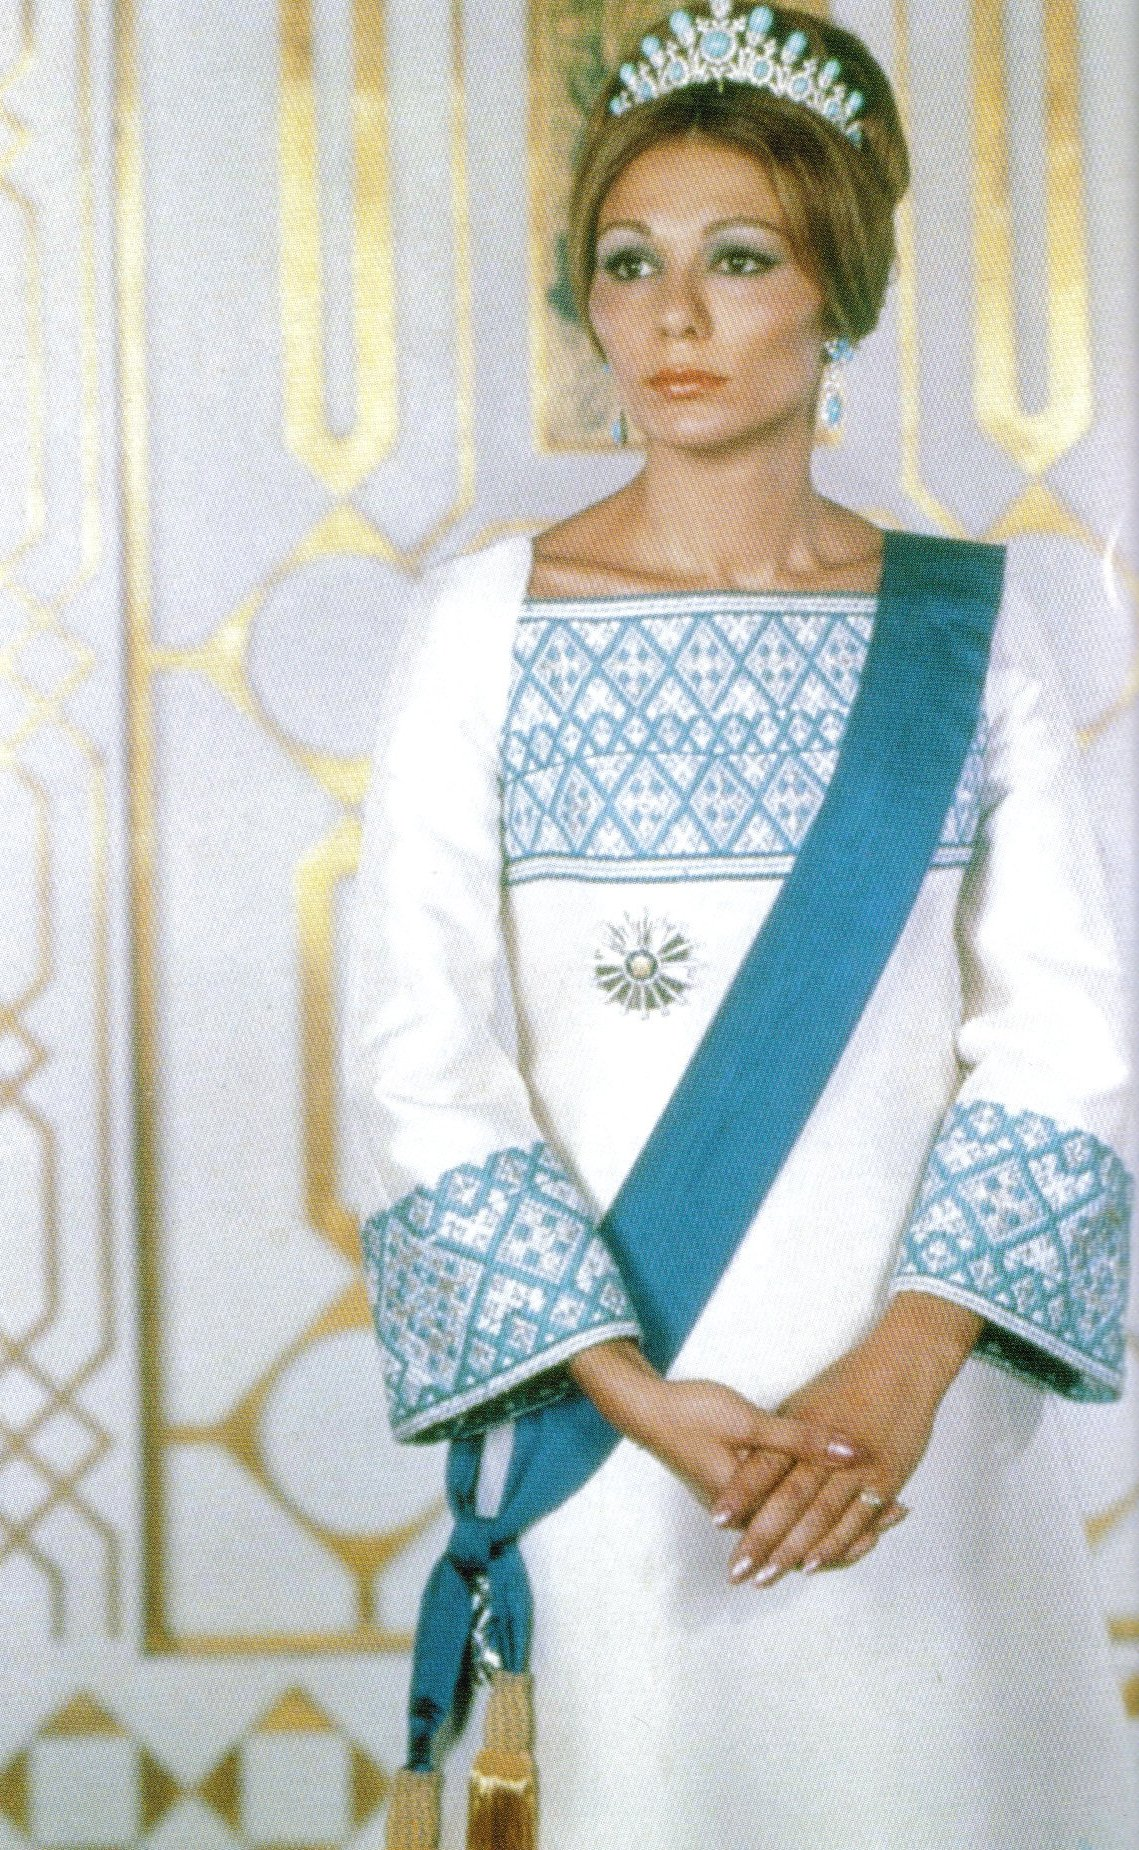 http://dic.academic.ru/pictures/wiki/files/69/Empress_Farah.jpg